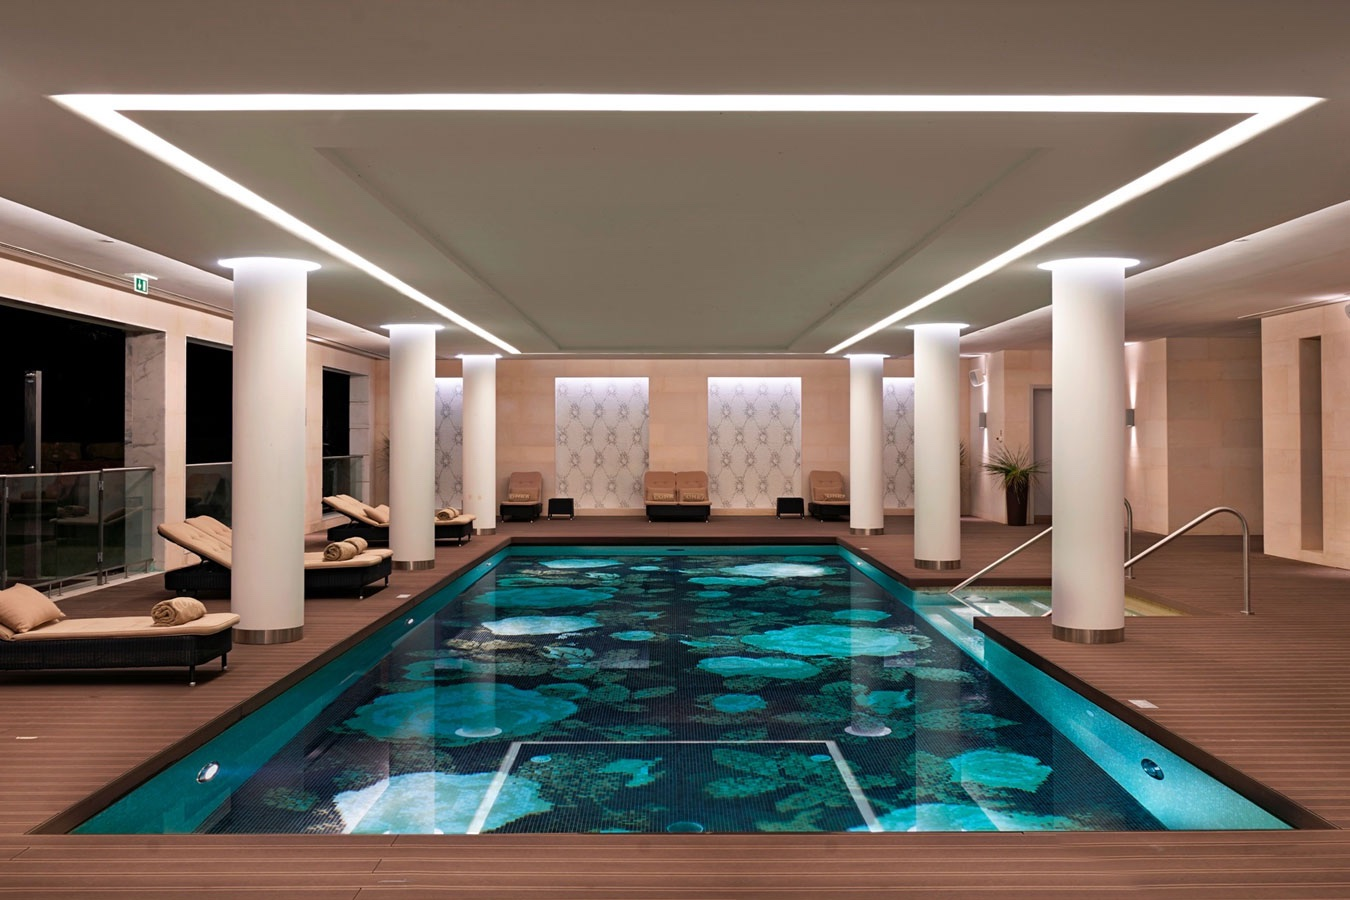 Conrad Algarve Spa - Design Lovers Guide to Portugal: Things to Do In Portugal for Architecture, Art & Design Lovers - best spas in portugal - most beautiful spas in the world